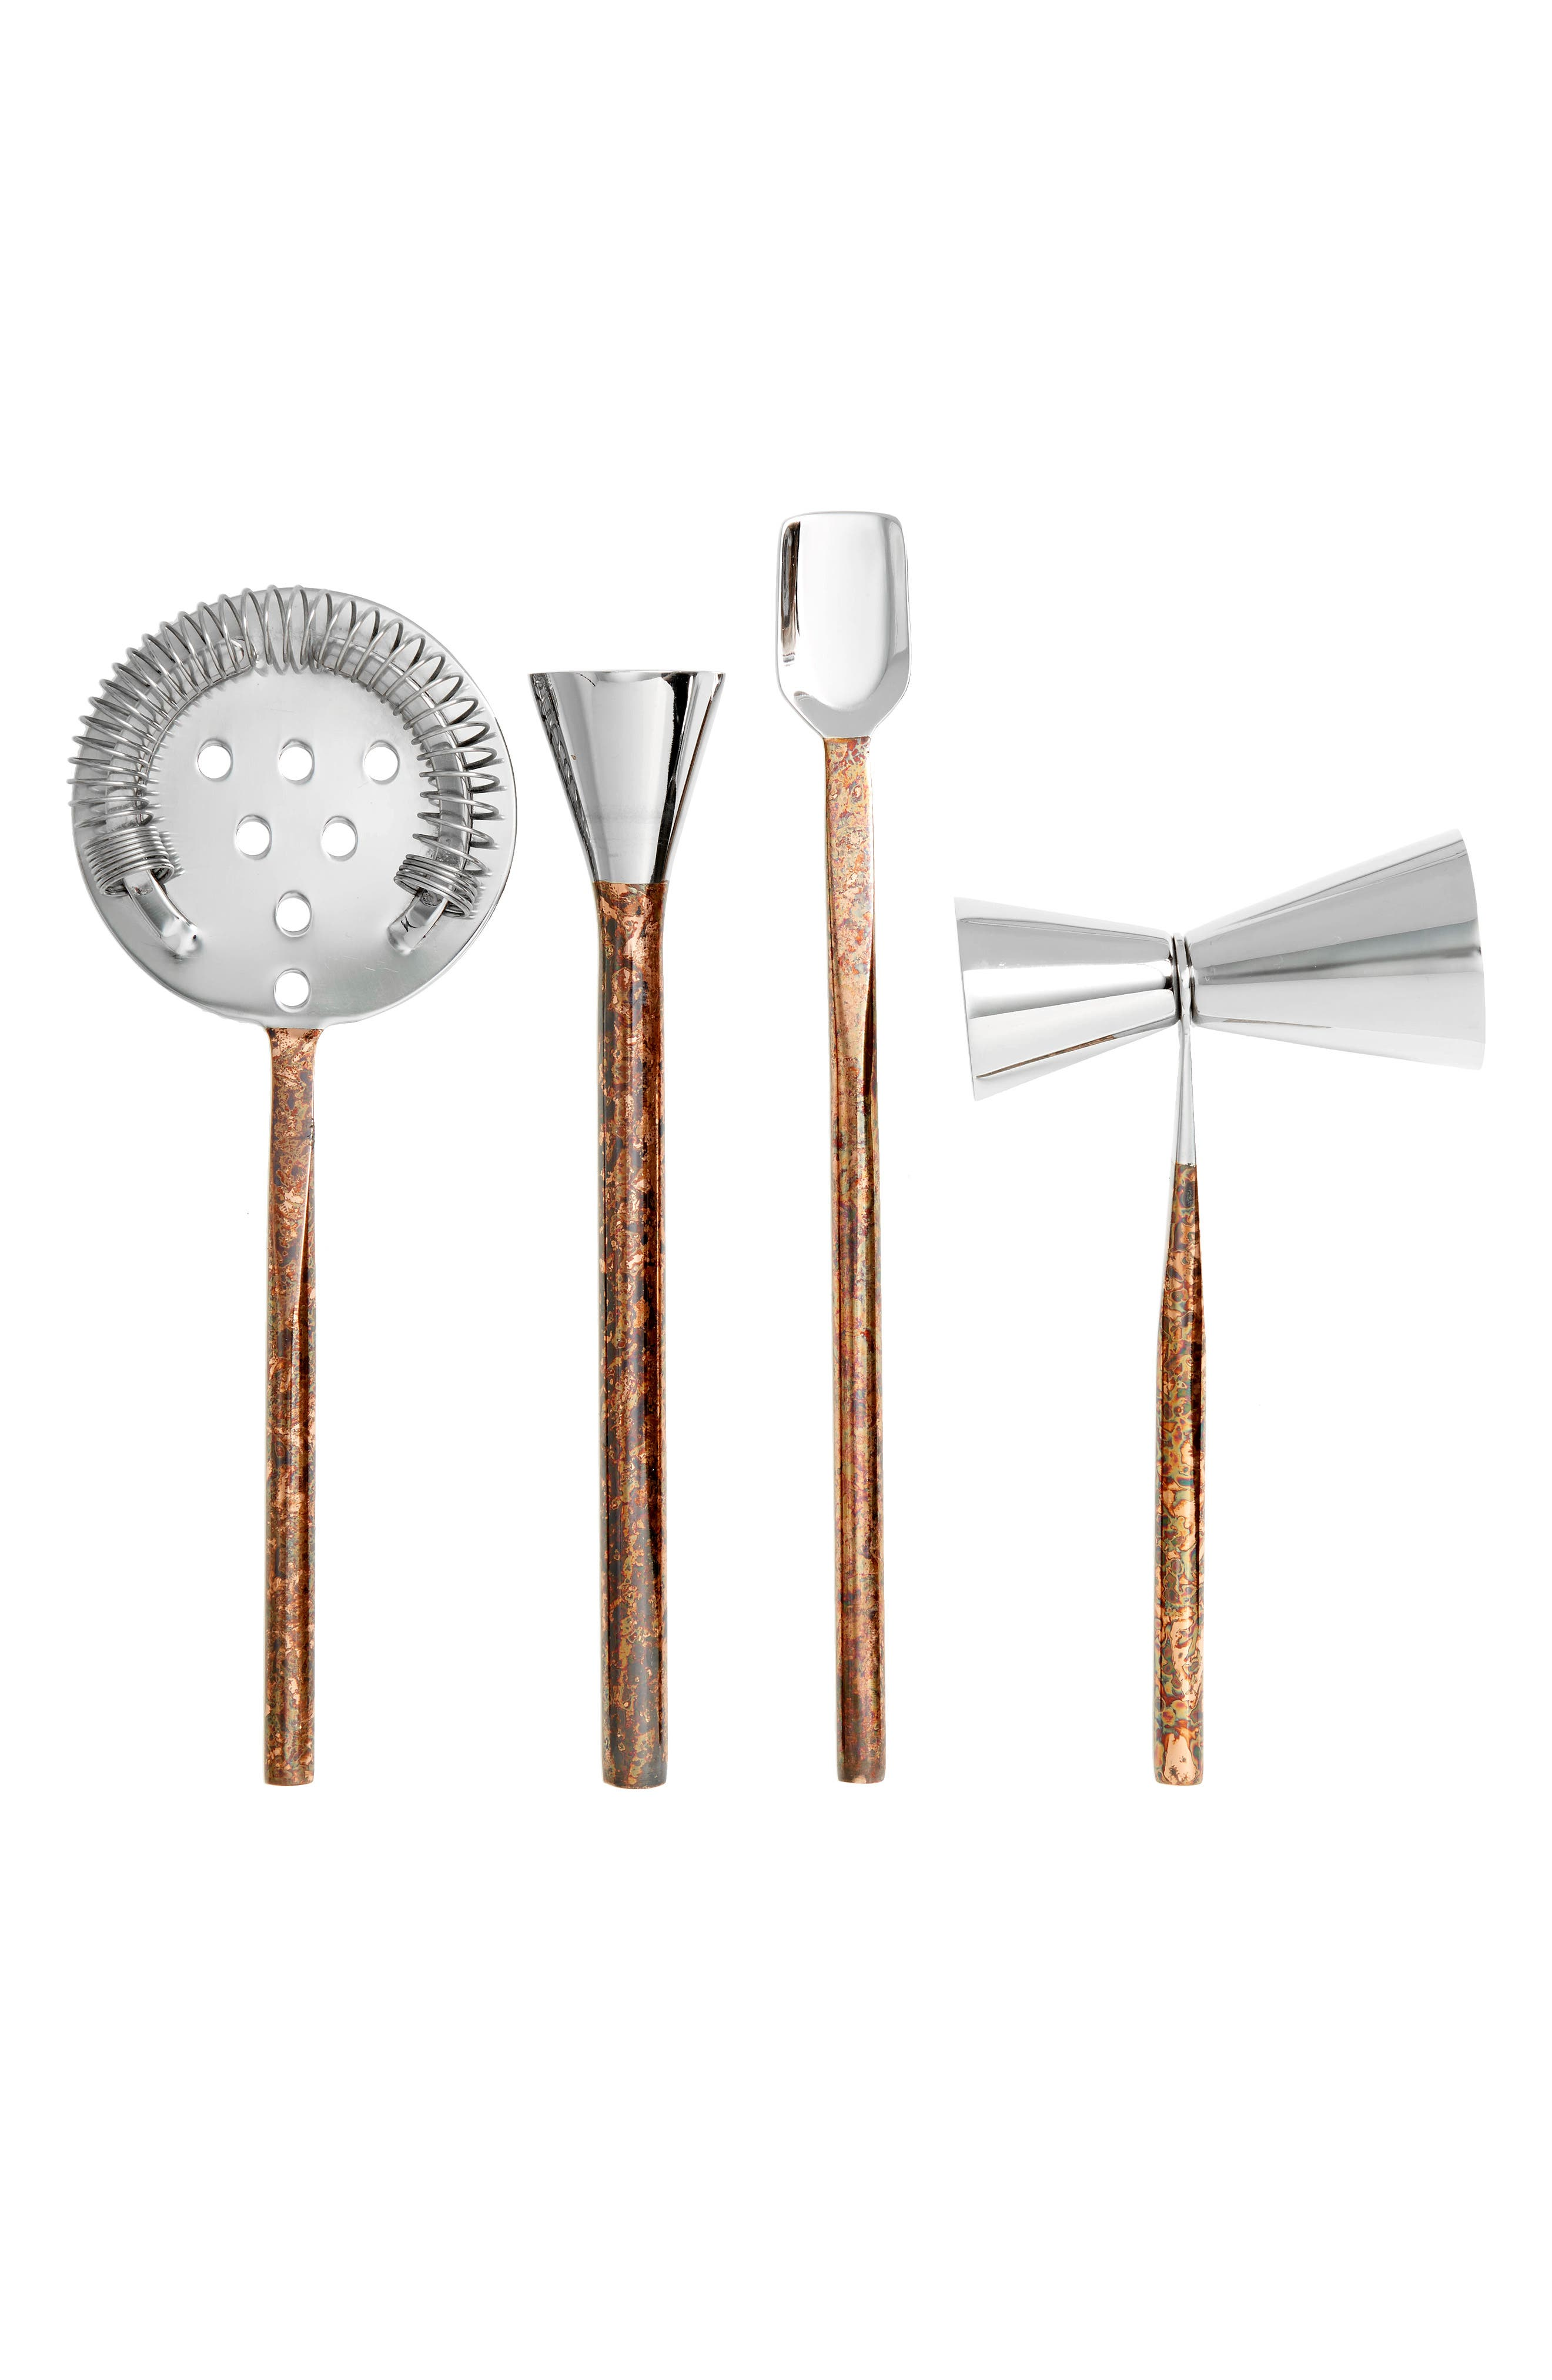 4-Piece Distressed Copper & Stainless Steel Bar Set,                             Main thumbnail 1, color,                             220